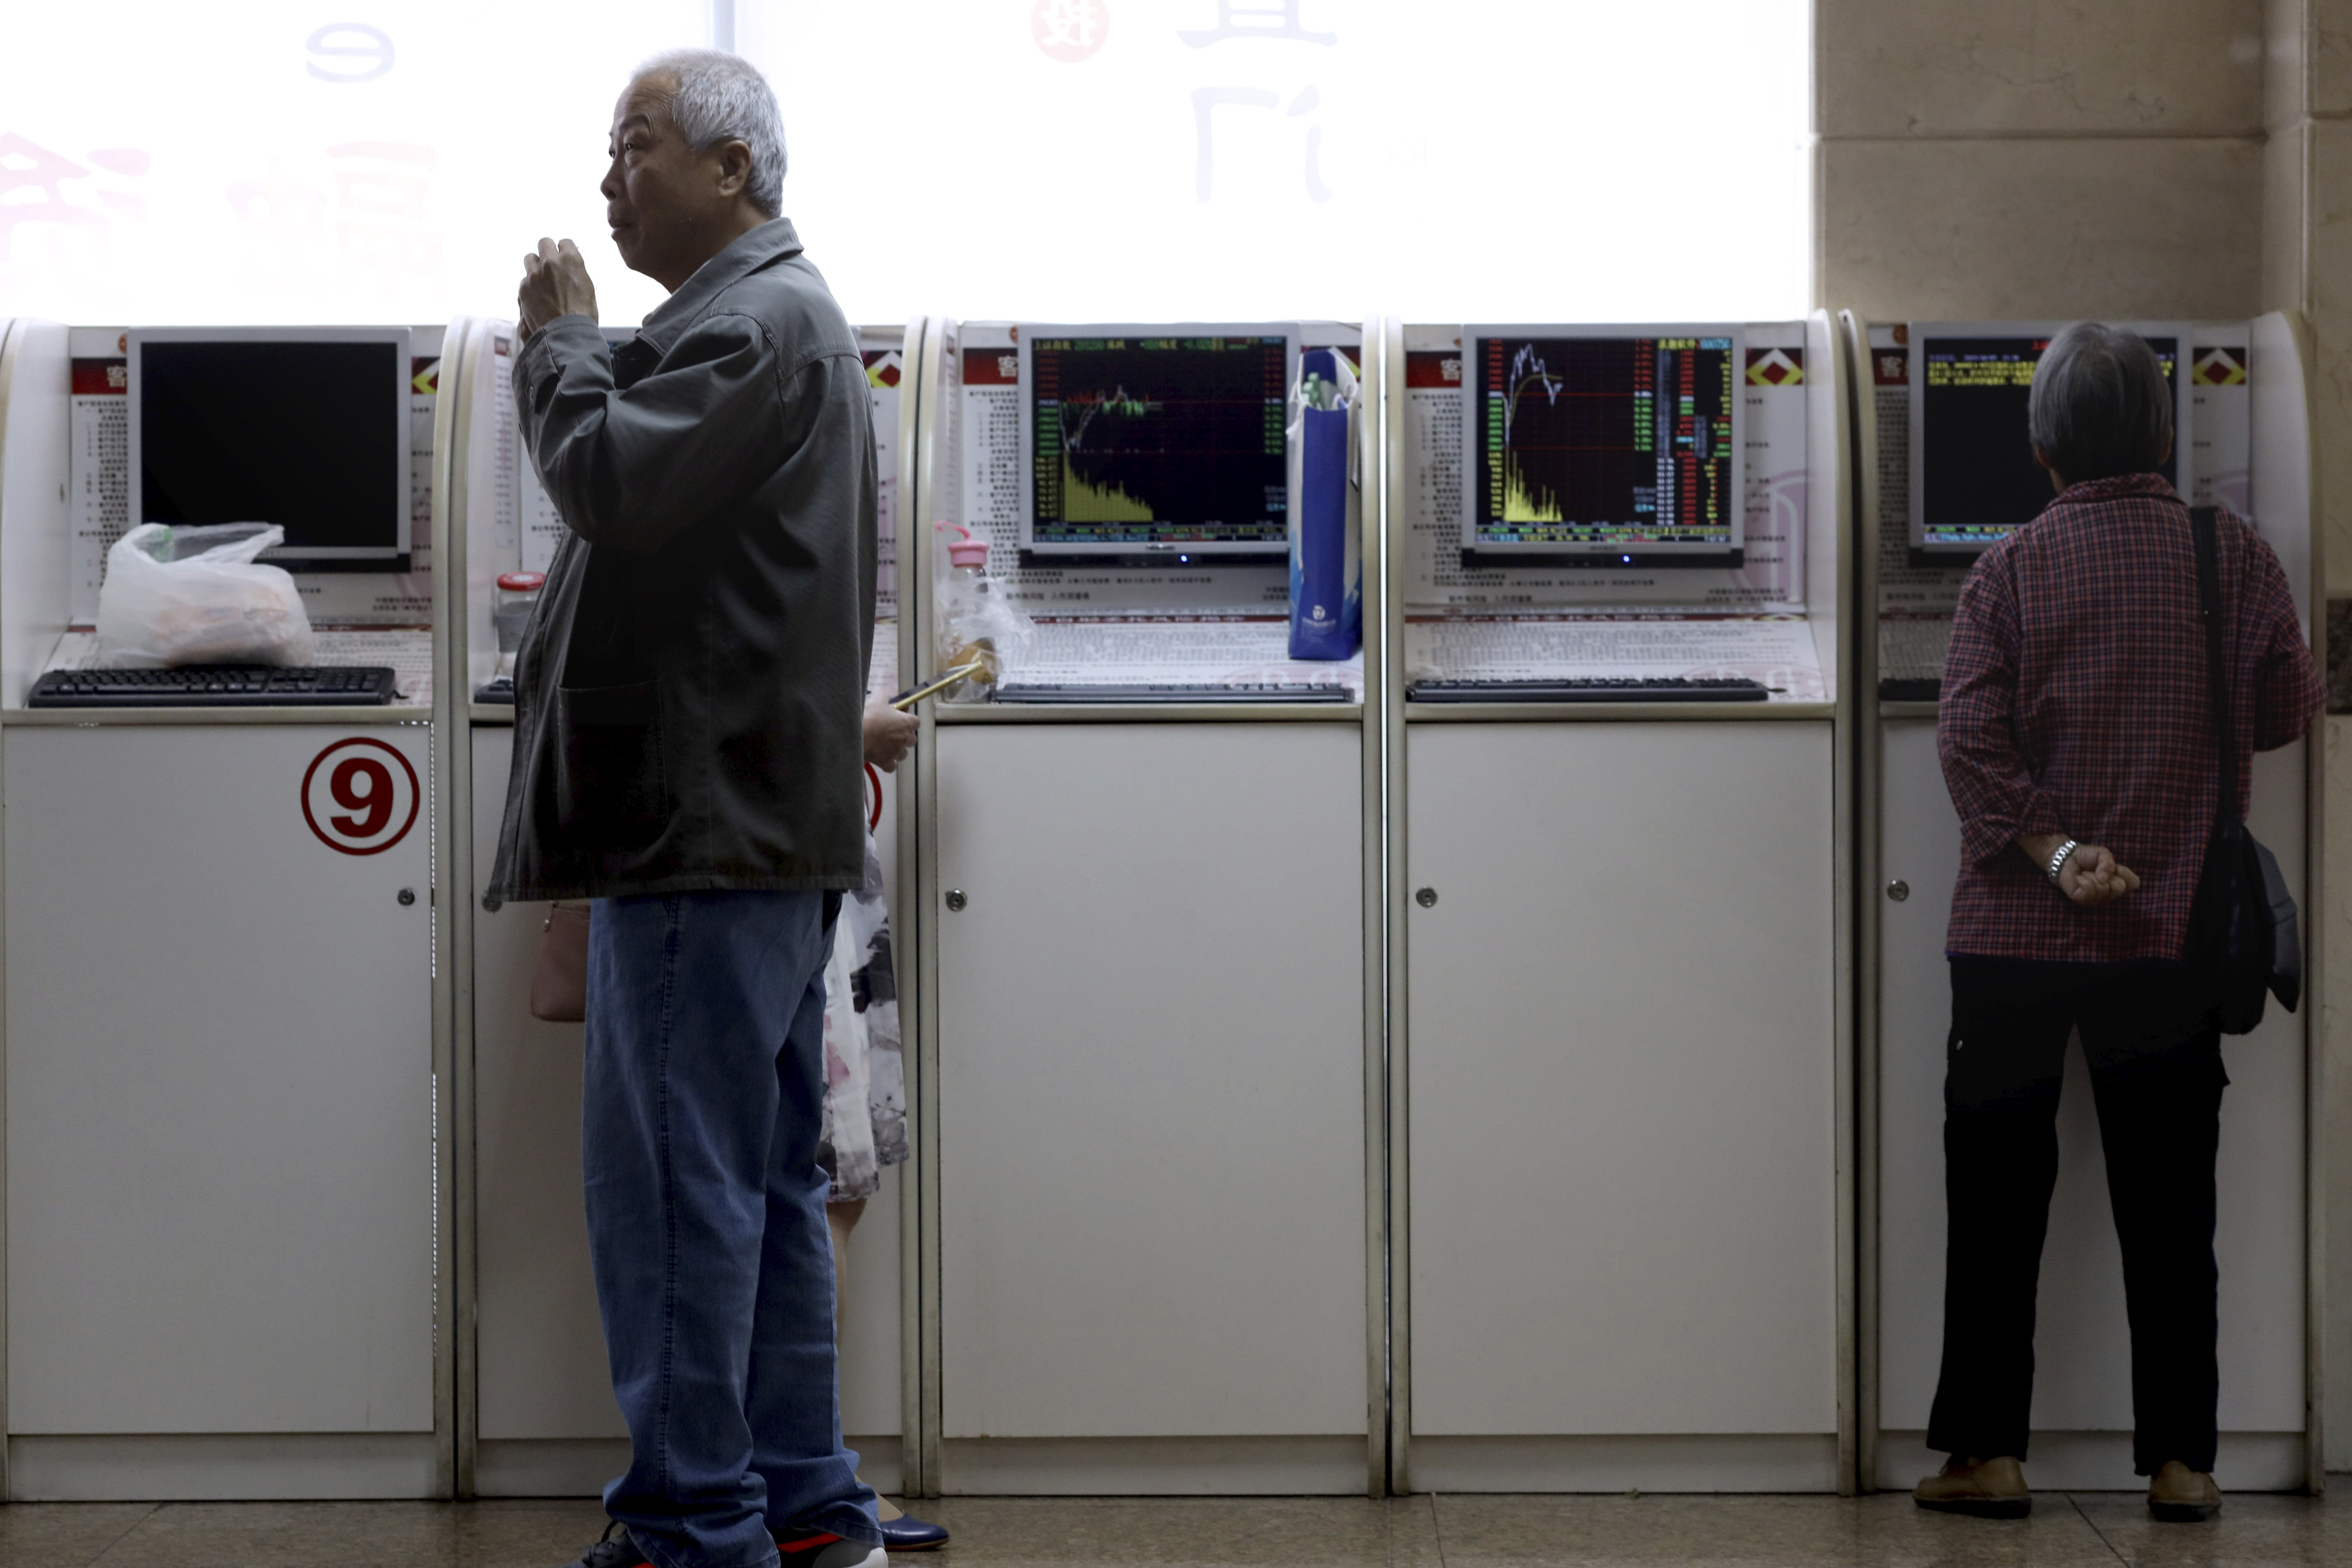 Chinese investors monitor stock prices at a brokerage in Beijing on Wednesday, Oct. 9, 2019. Shares slipped in Asia on Wednesday as tensions between the U.S. and China flared ahead of talks aimed at resolving the trade war between the world's two biggest economies. (AP Photo/Ng Han Guan)